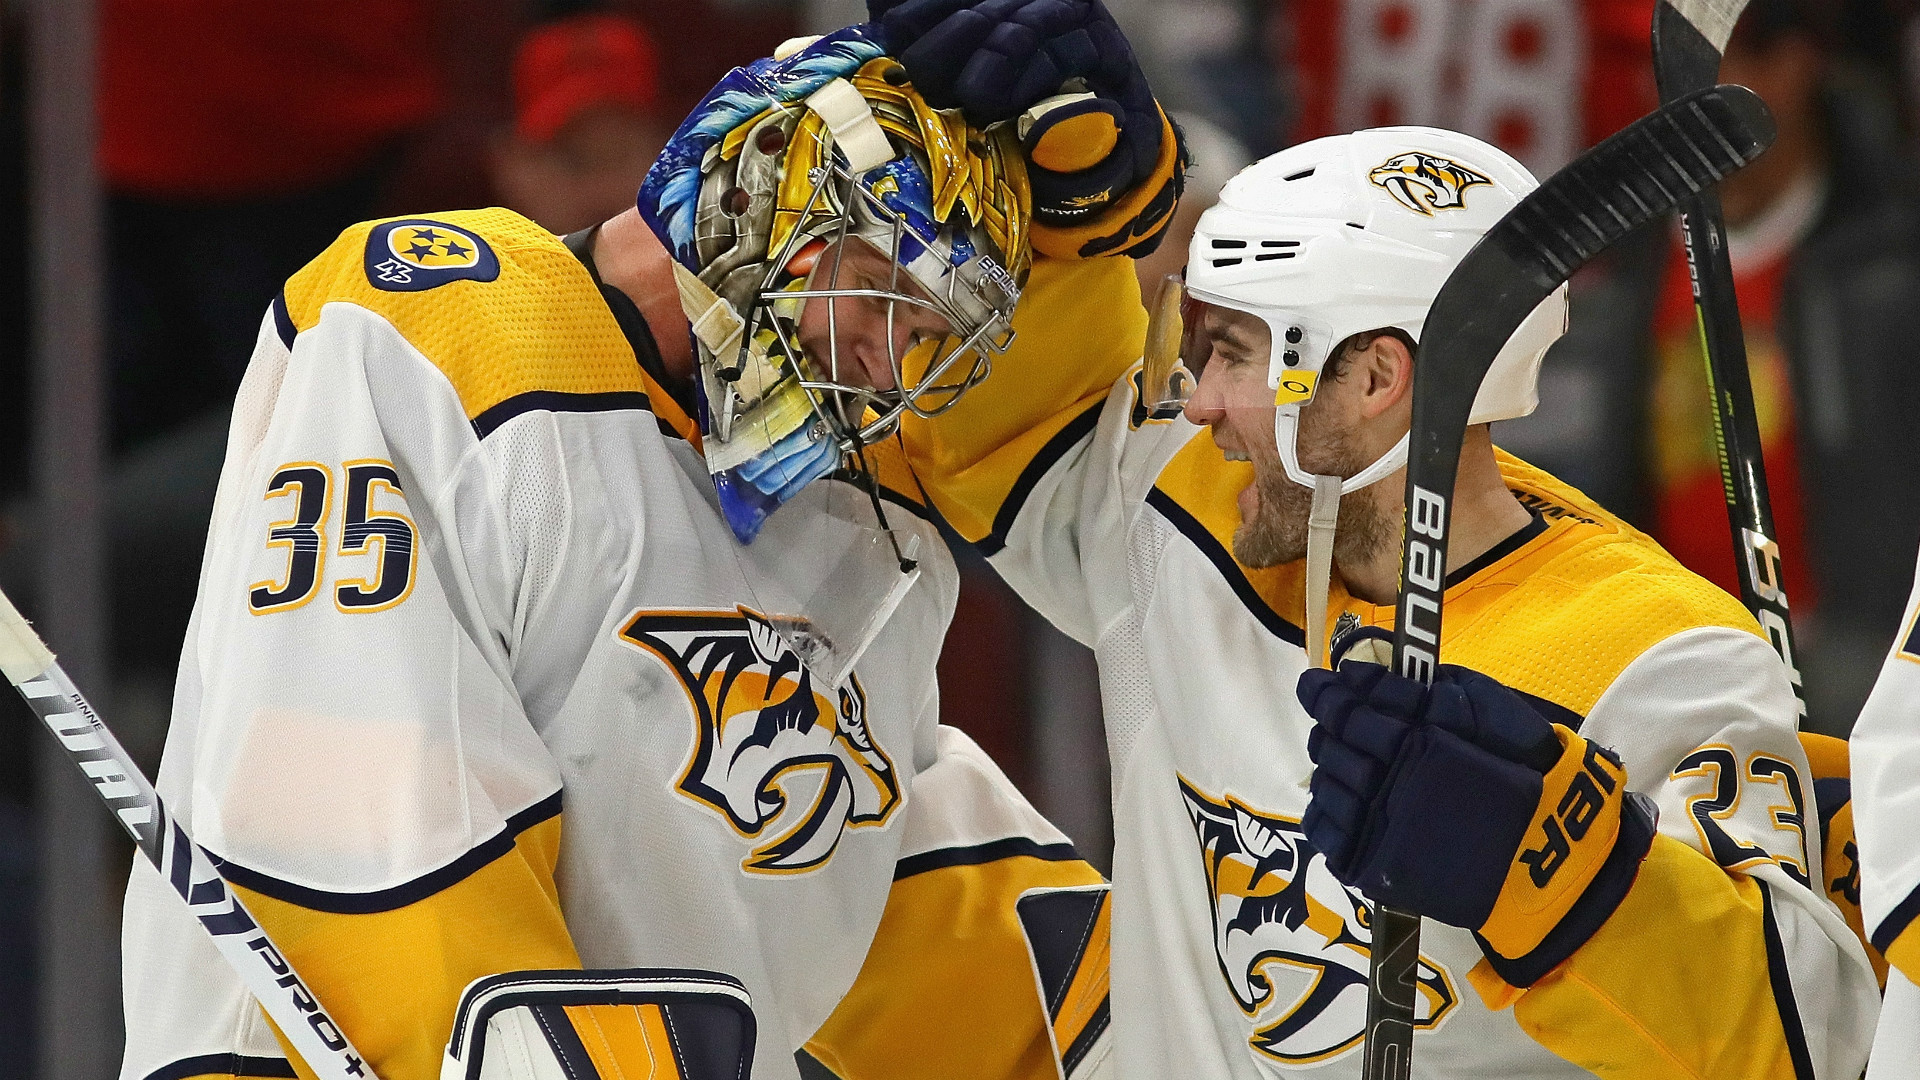 NHL: Pekka Rinne trouve le chemin du but